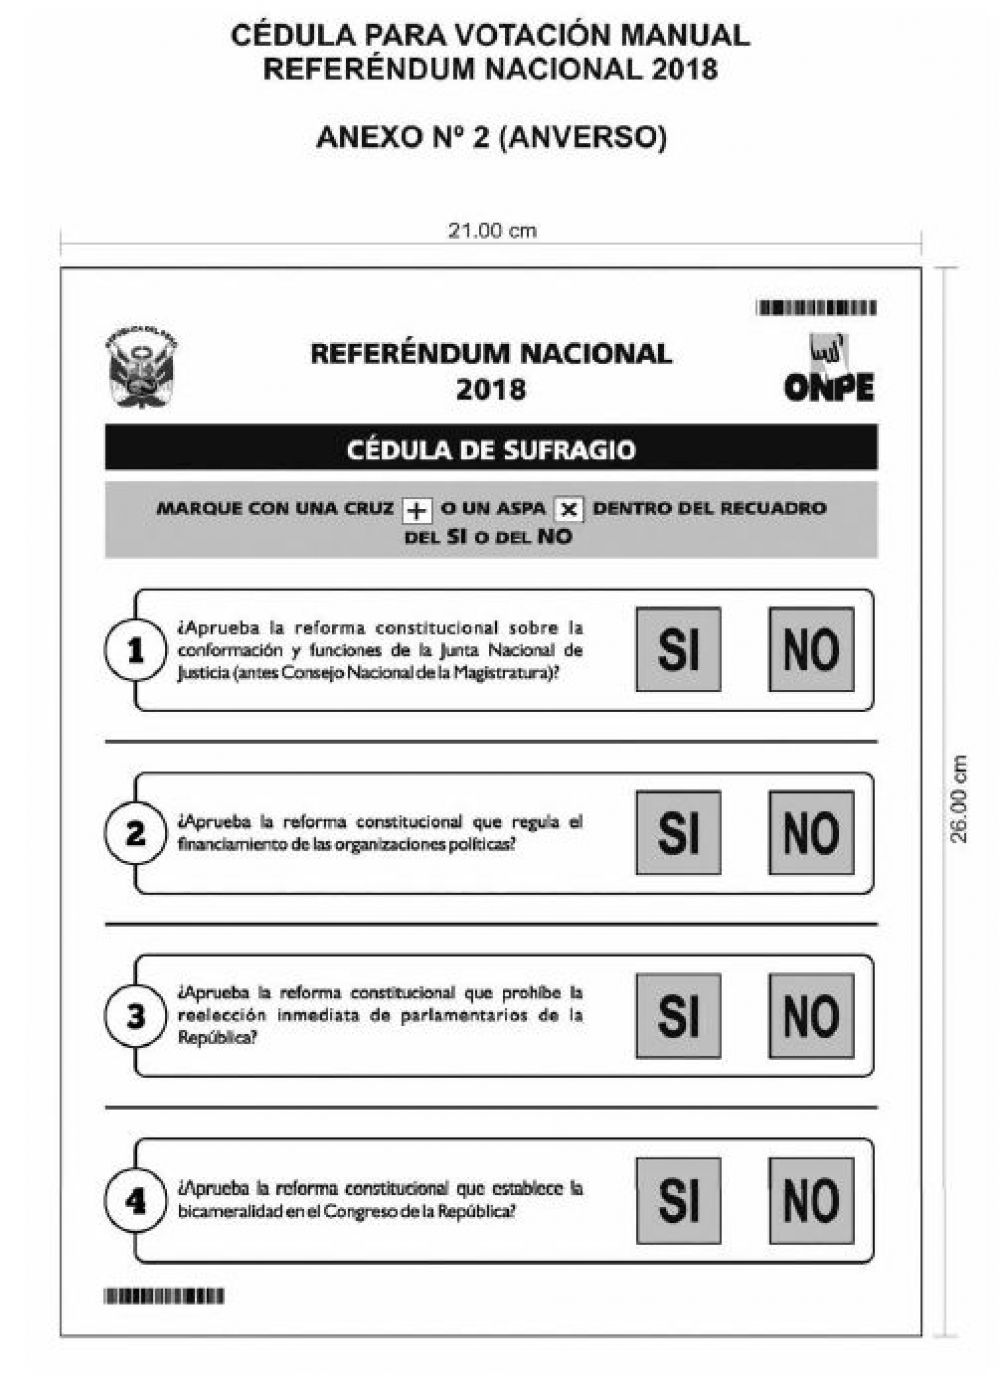 Cédula de Sufragio manual